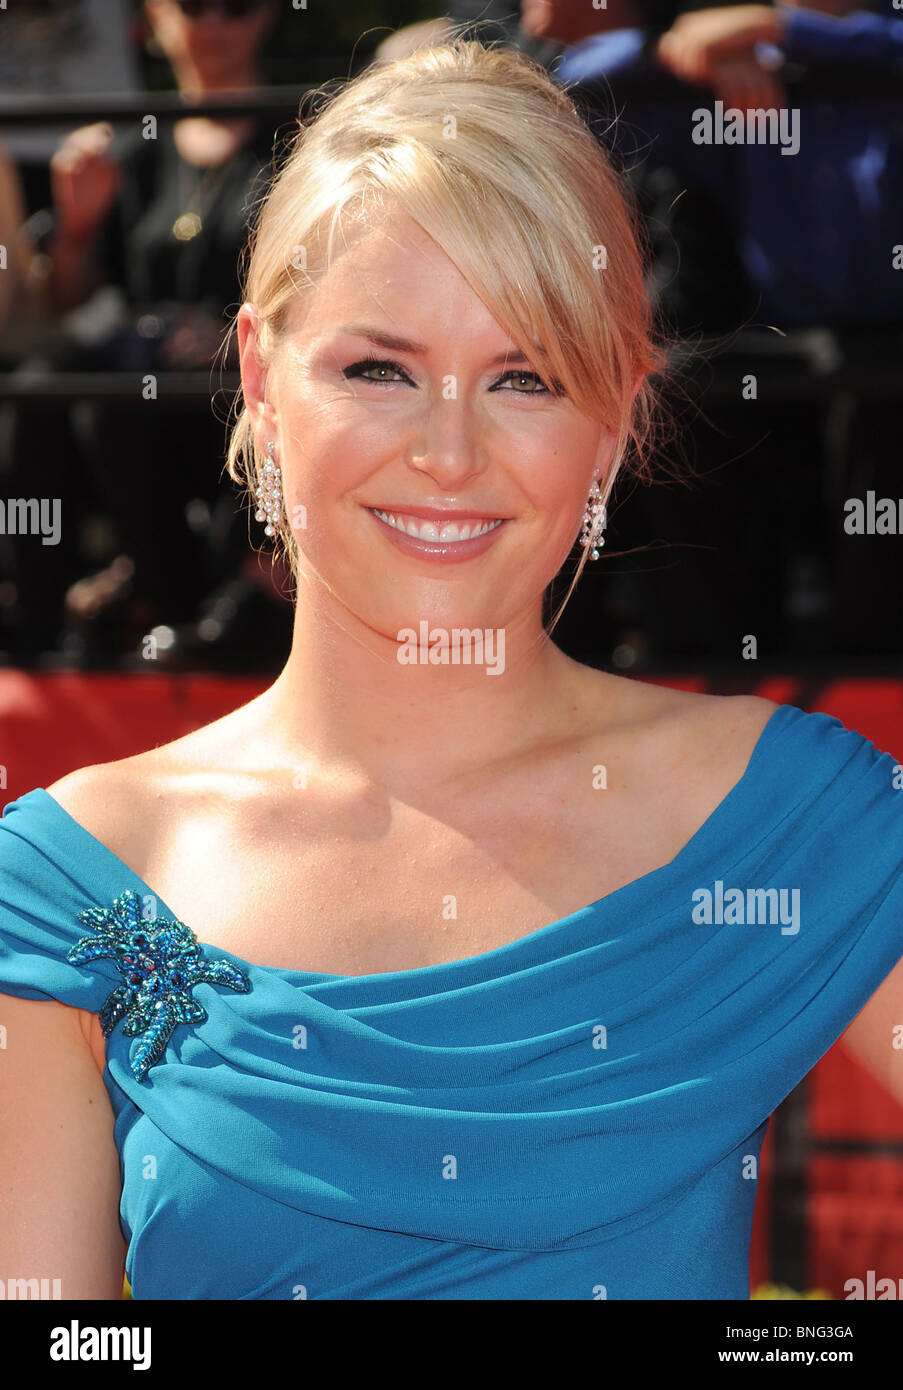 LINDSEY VONN - US Olympic skier at a film festival in July 2010 - Stock Image